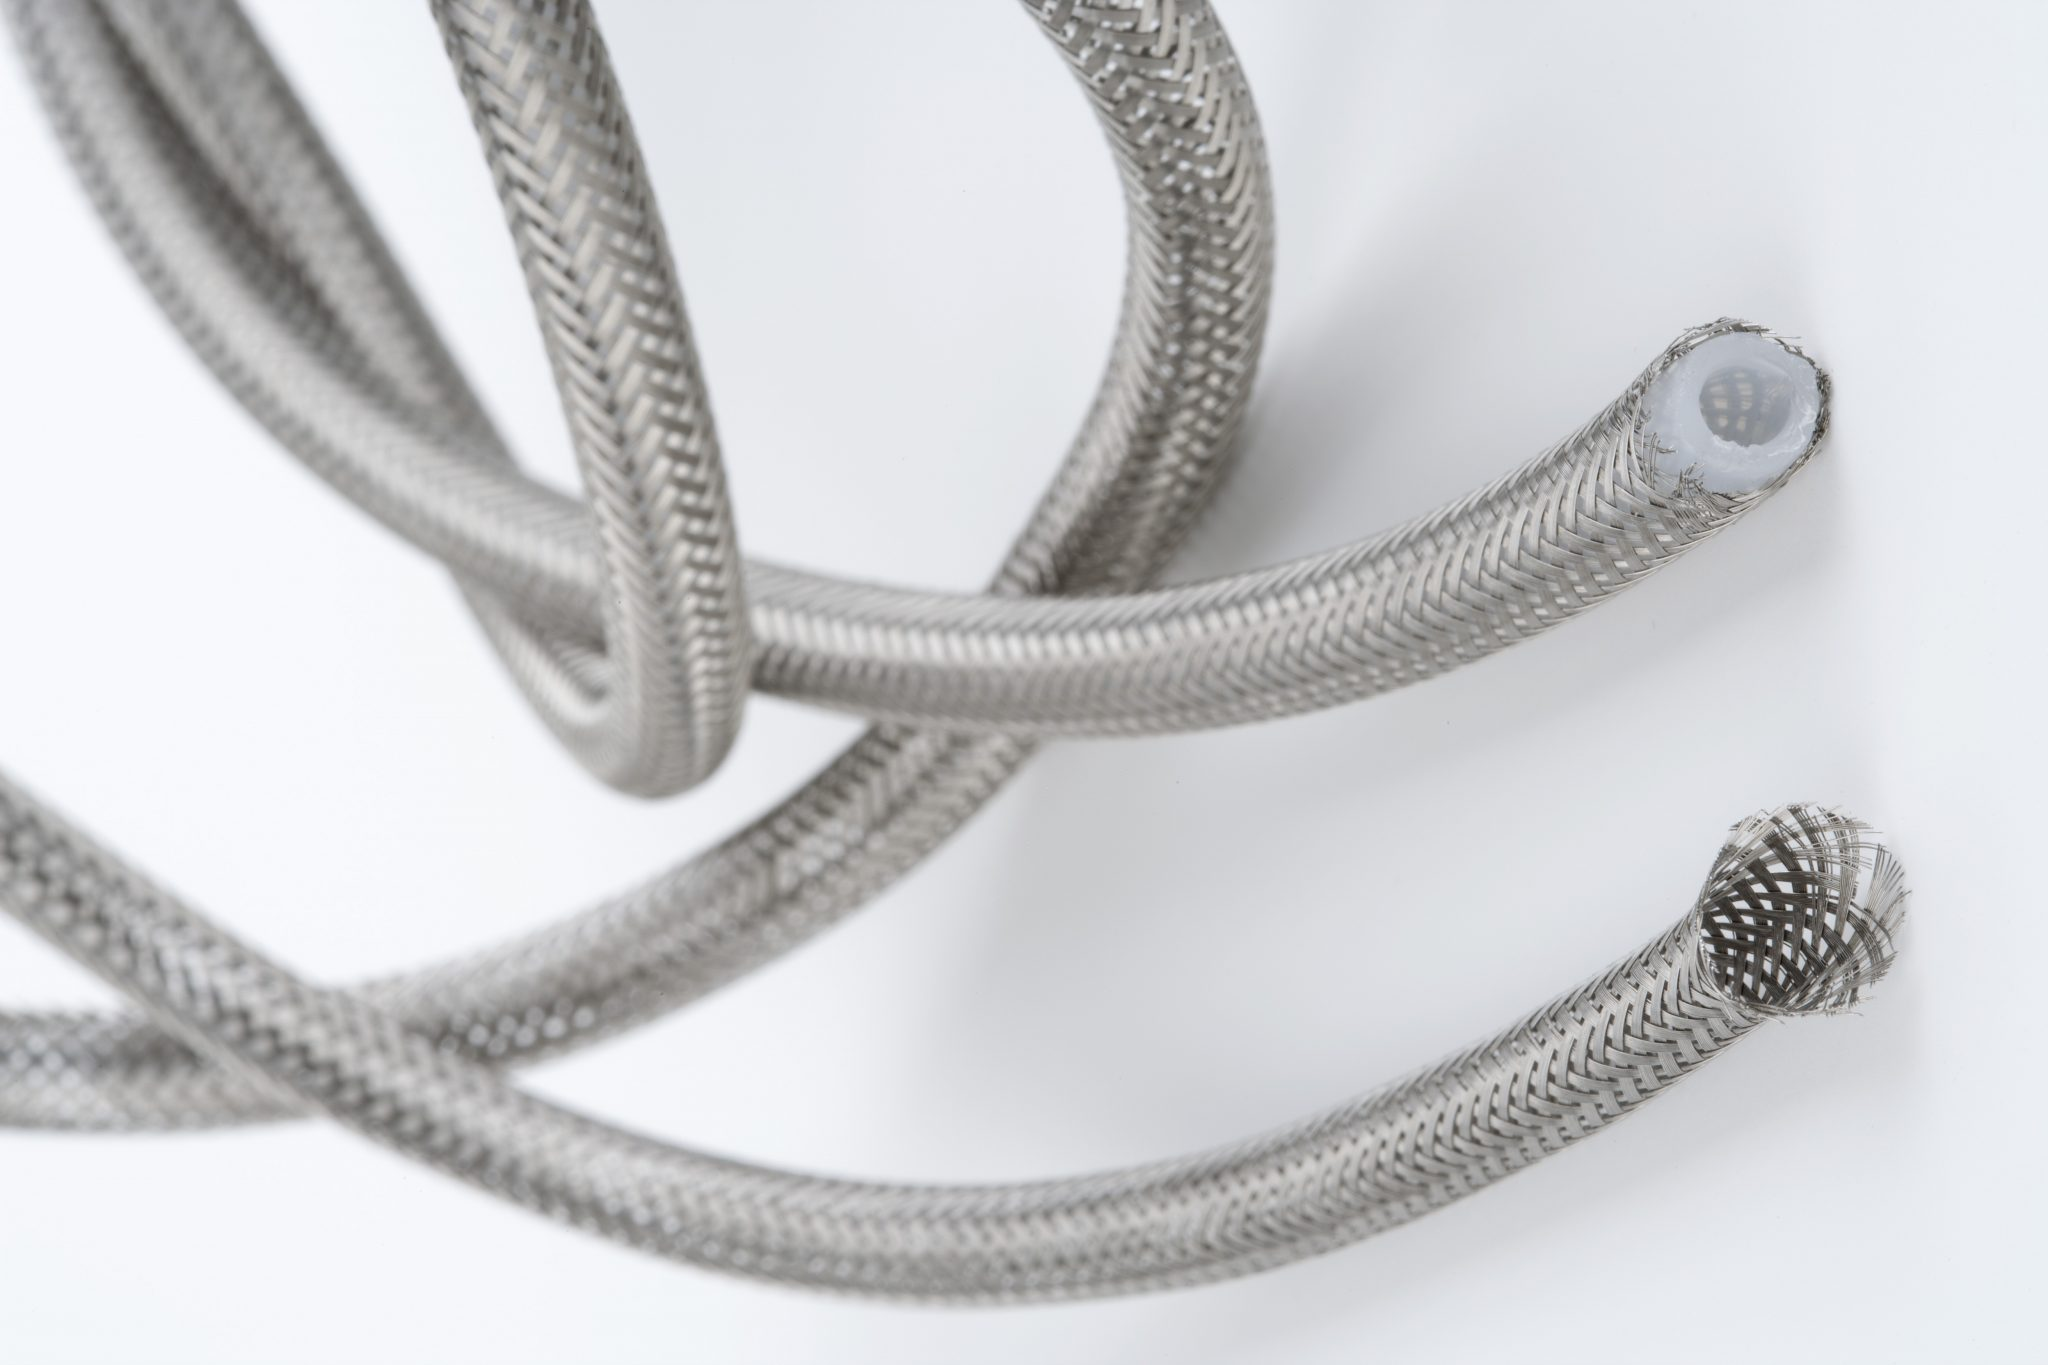 Braided Tubing For Medical Application